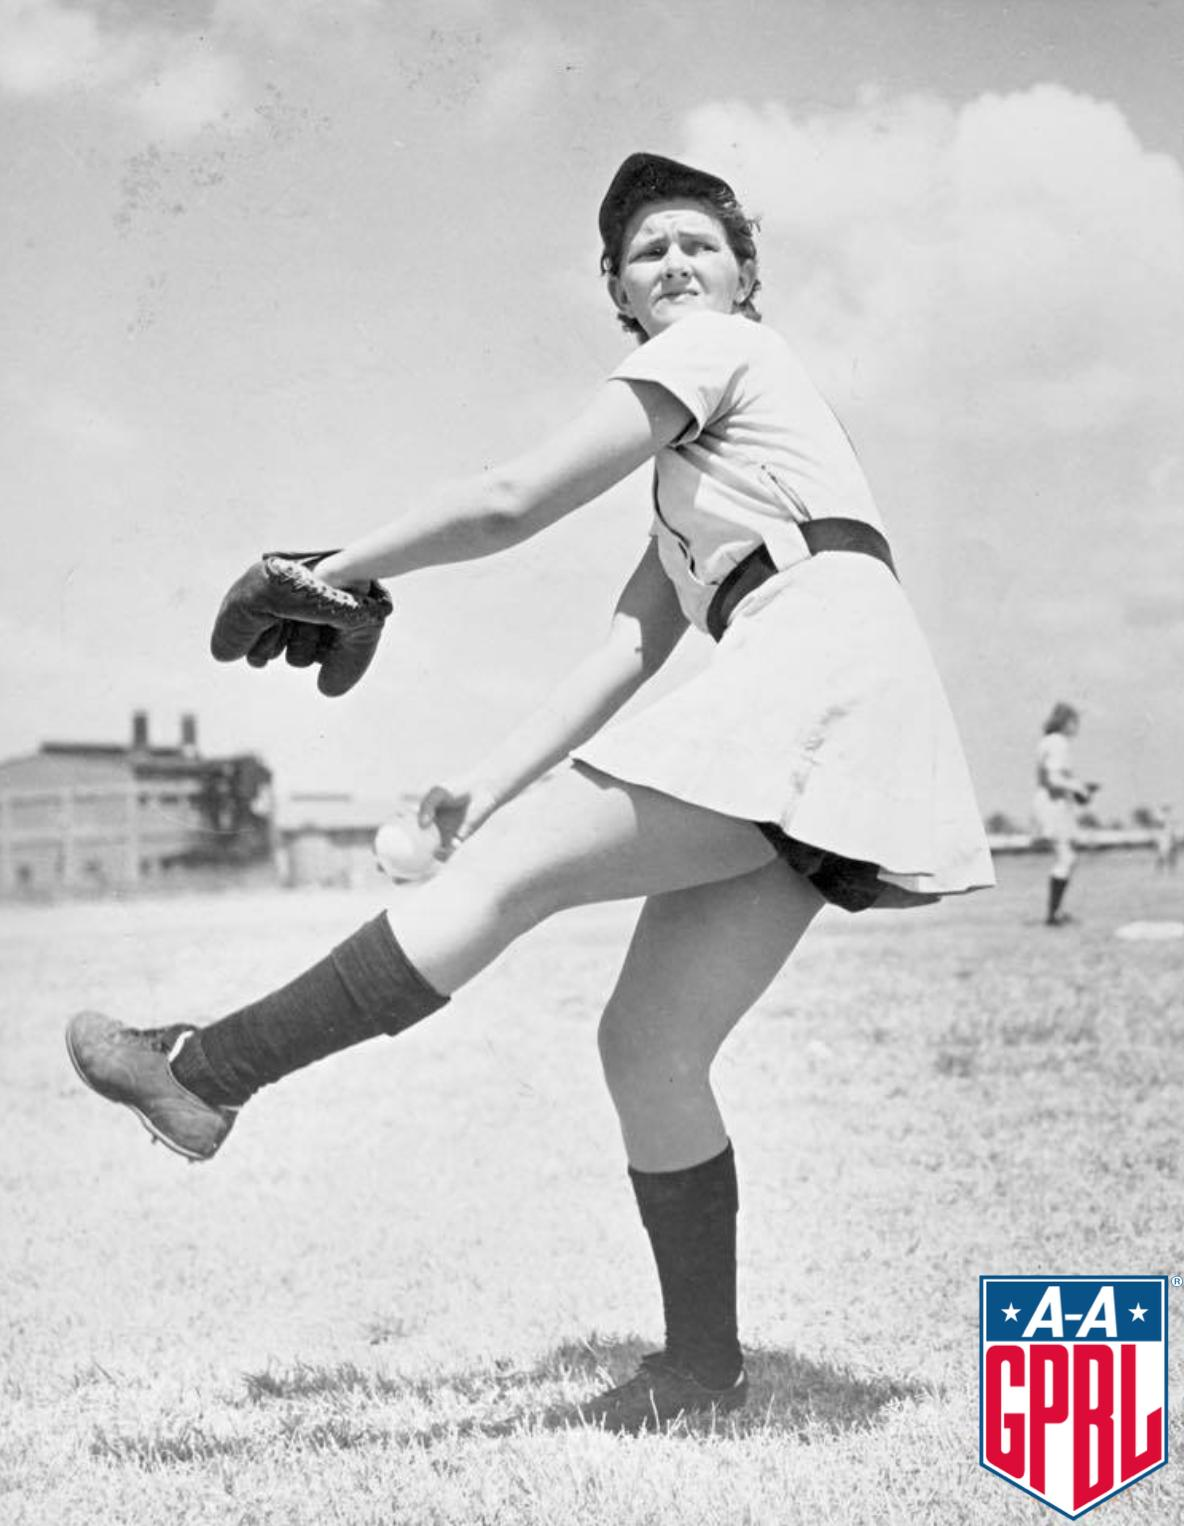 "In her rookie season (1947), Mildred Earp won 20 games, had an ERA of 0.68 and made her only All-Star appearance! Her ERA is the second lowest single season record in AAGPBL history. In four seasons ""Mid"" went 54-38 with a 1.35ERA (860 IP) https://t.co/3ft8X4sF5Q"